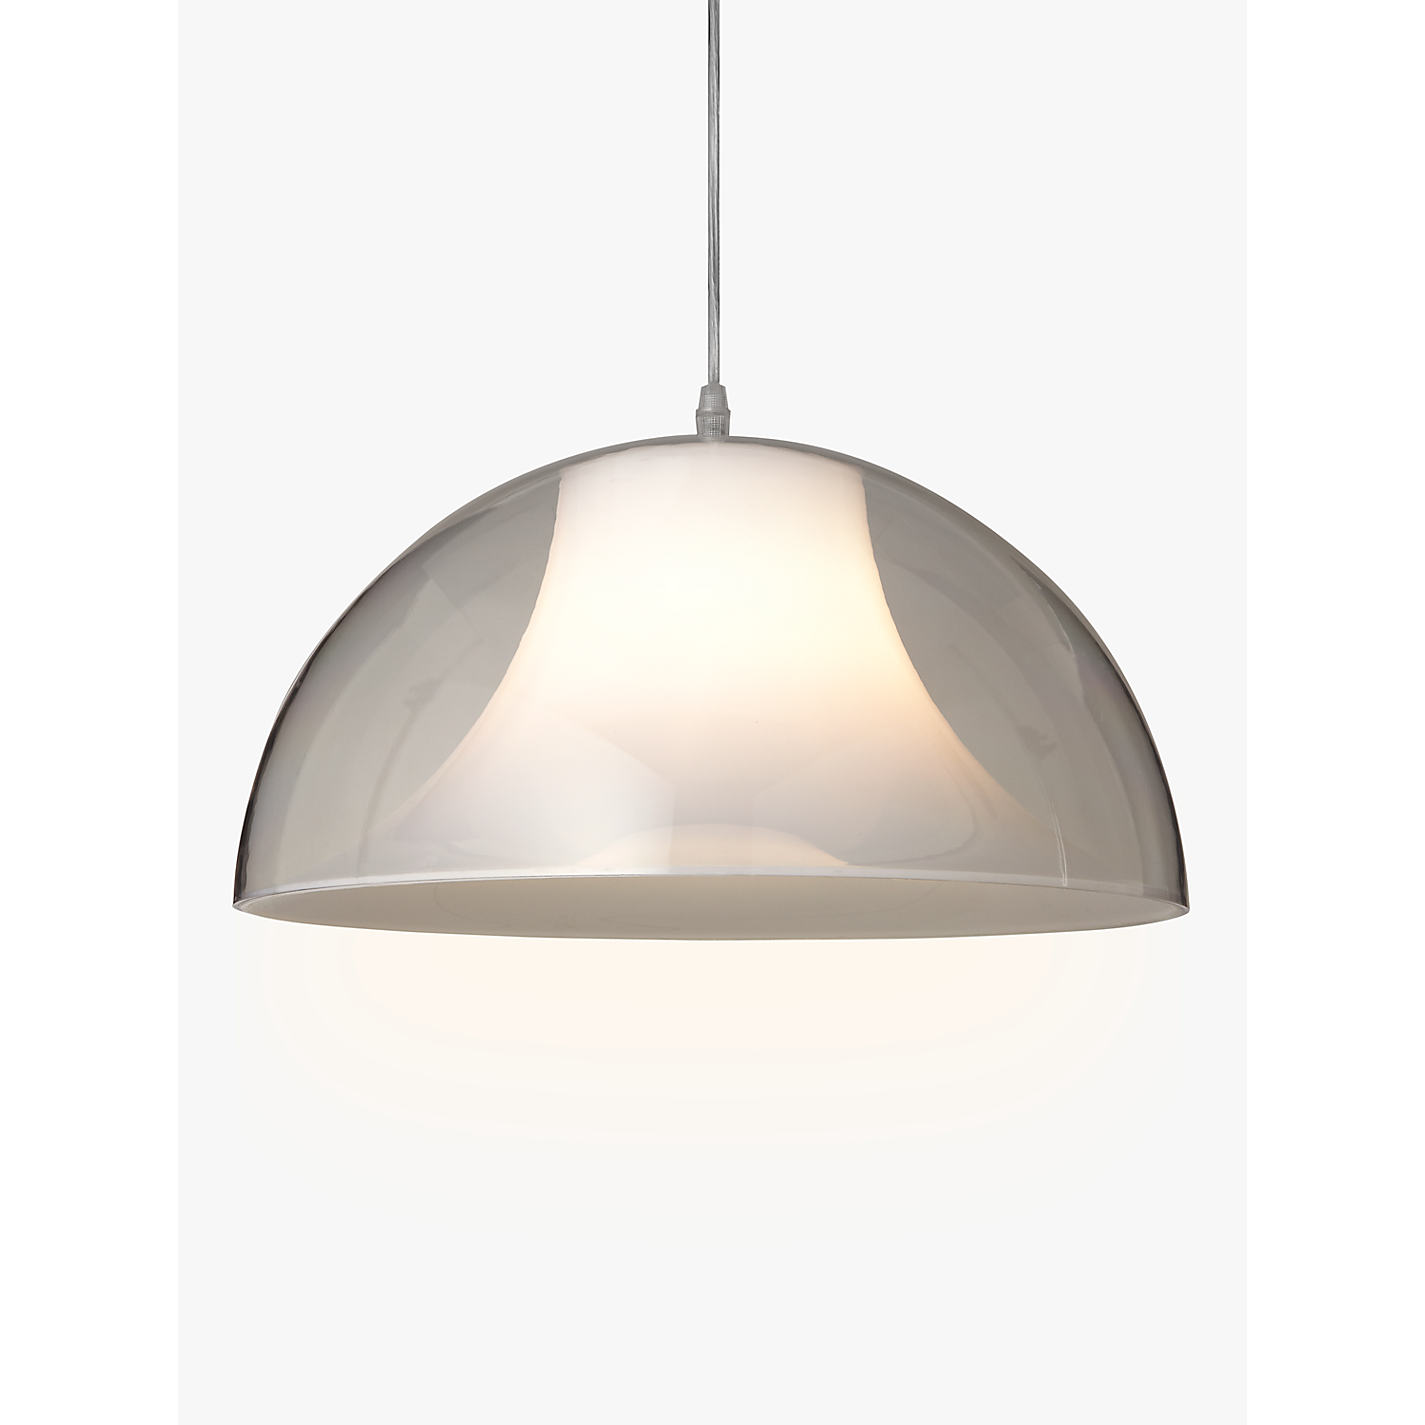 Buy house by john lewis morf acrylic dome pendant clear john lewis buy house by john lewis morf acrylic dome pendant clear online at johnlewis aloadofball Gallery